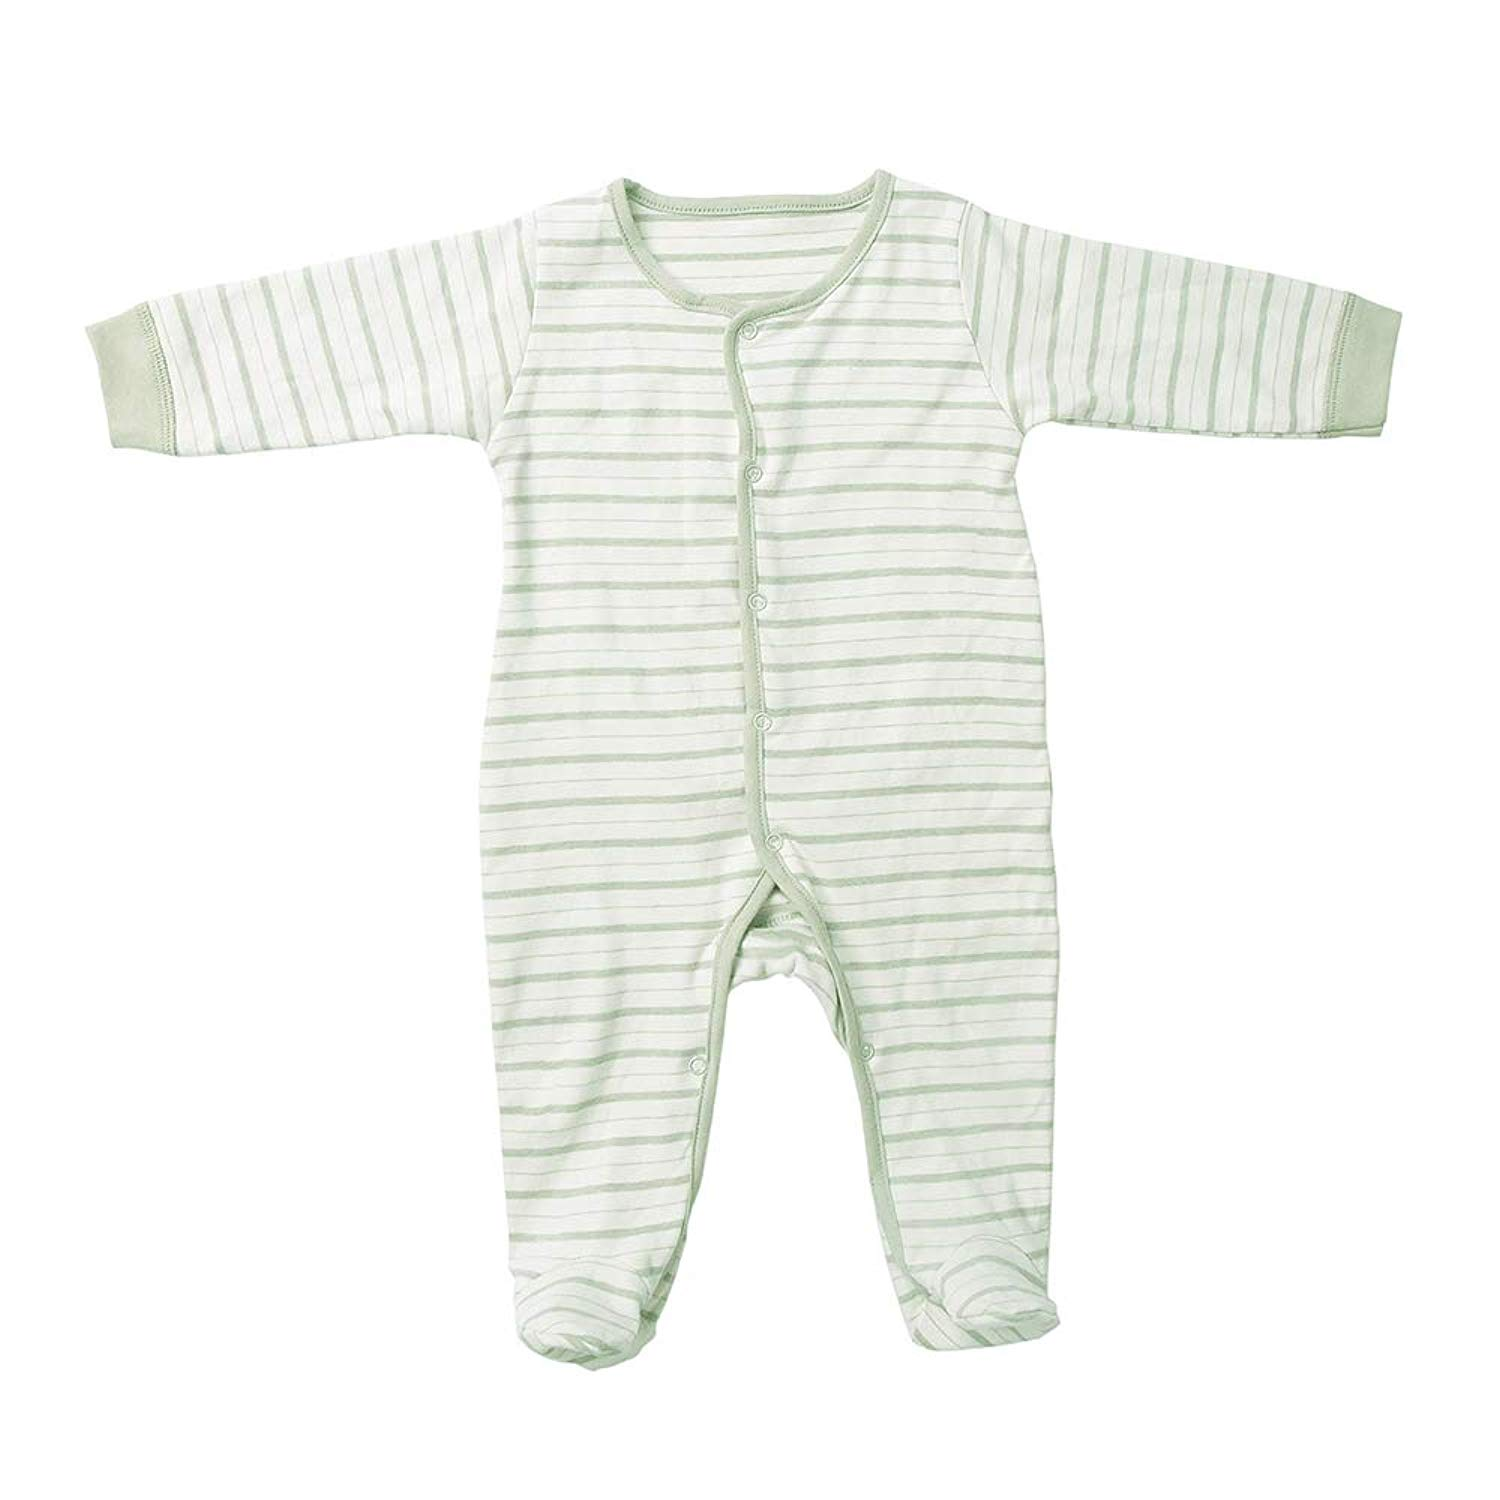 b3b3f98695 Get Quotations · MFHOU Footed Pajamas Sleeper Striped 100% Cotton Pajamas  Sleepwear for Unisex Baby (6-